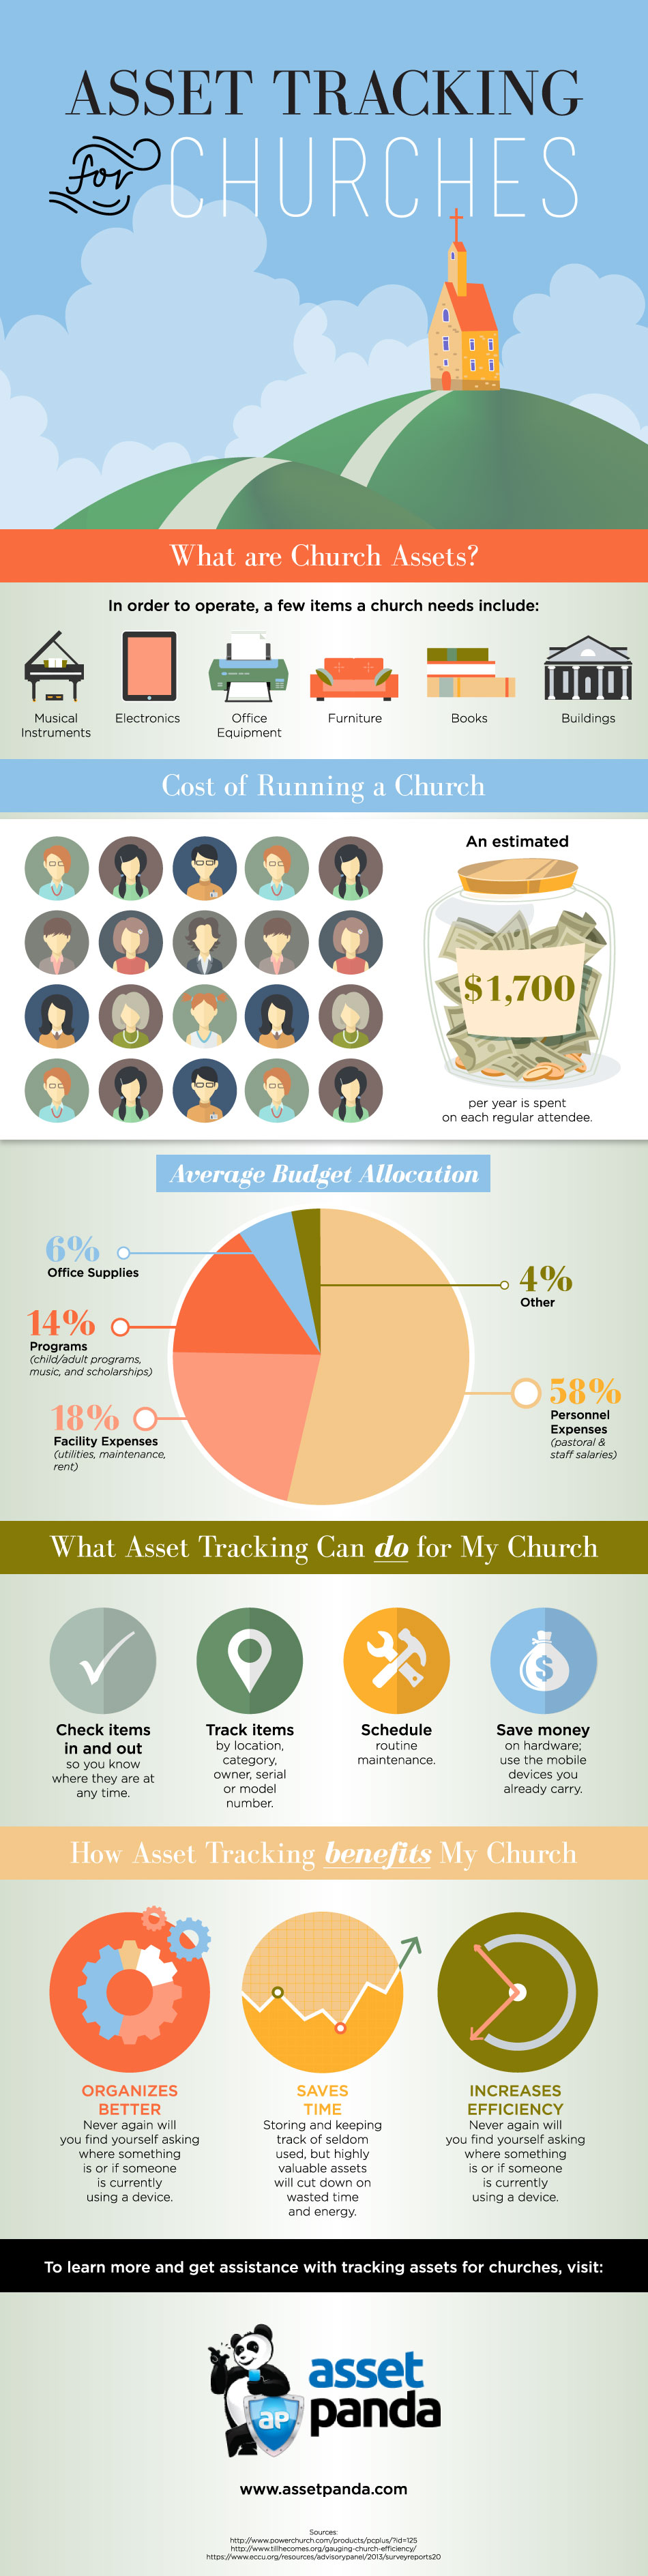 Asset Tracking For Churches